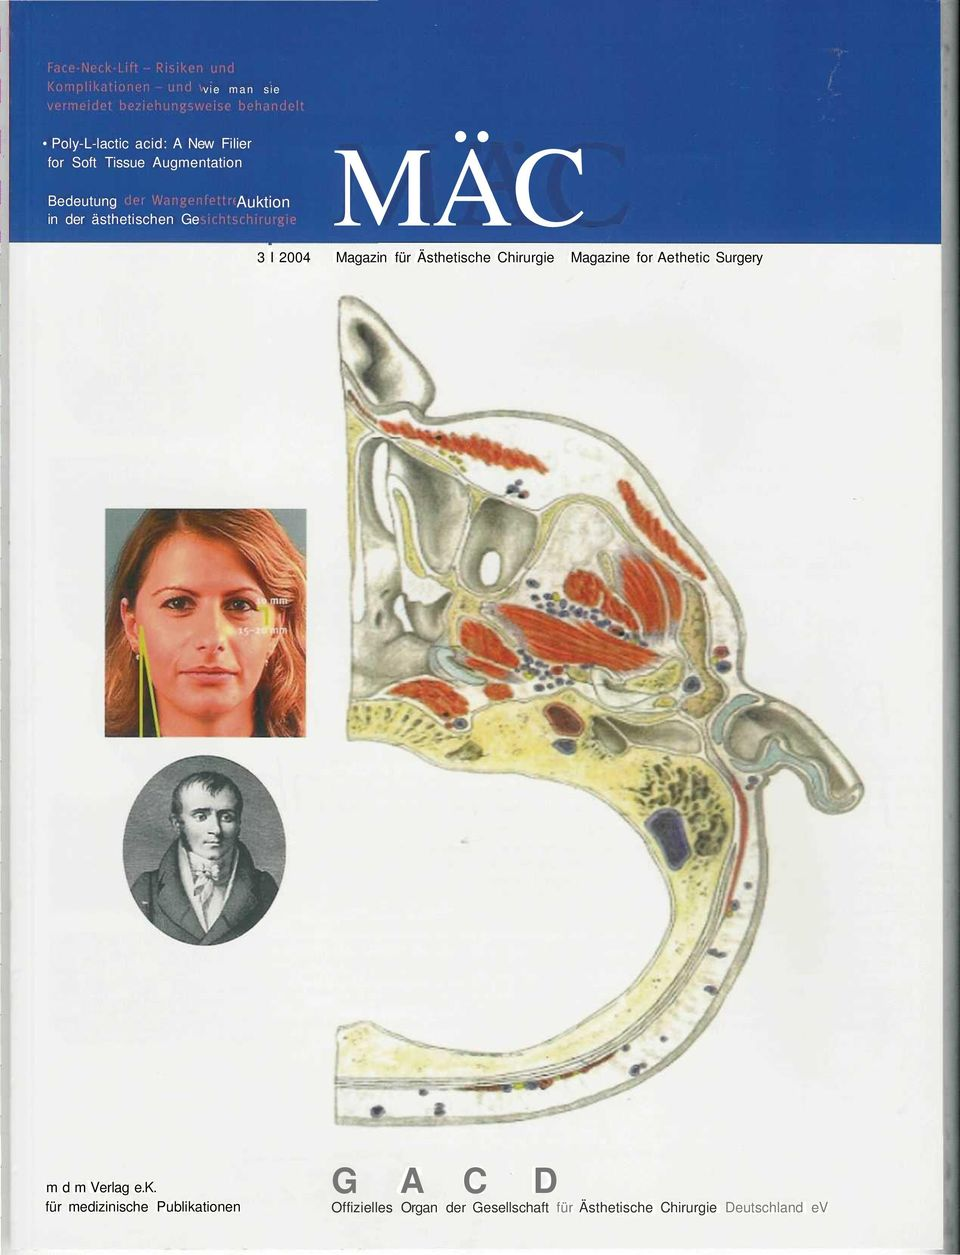 Chirurgie Magazine for Aethetic Surgery m d m Verlag e.k.